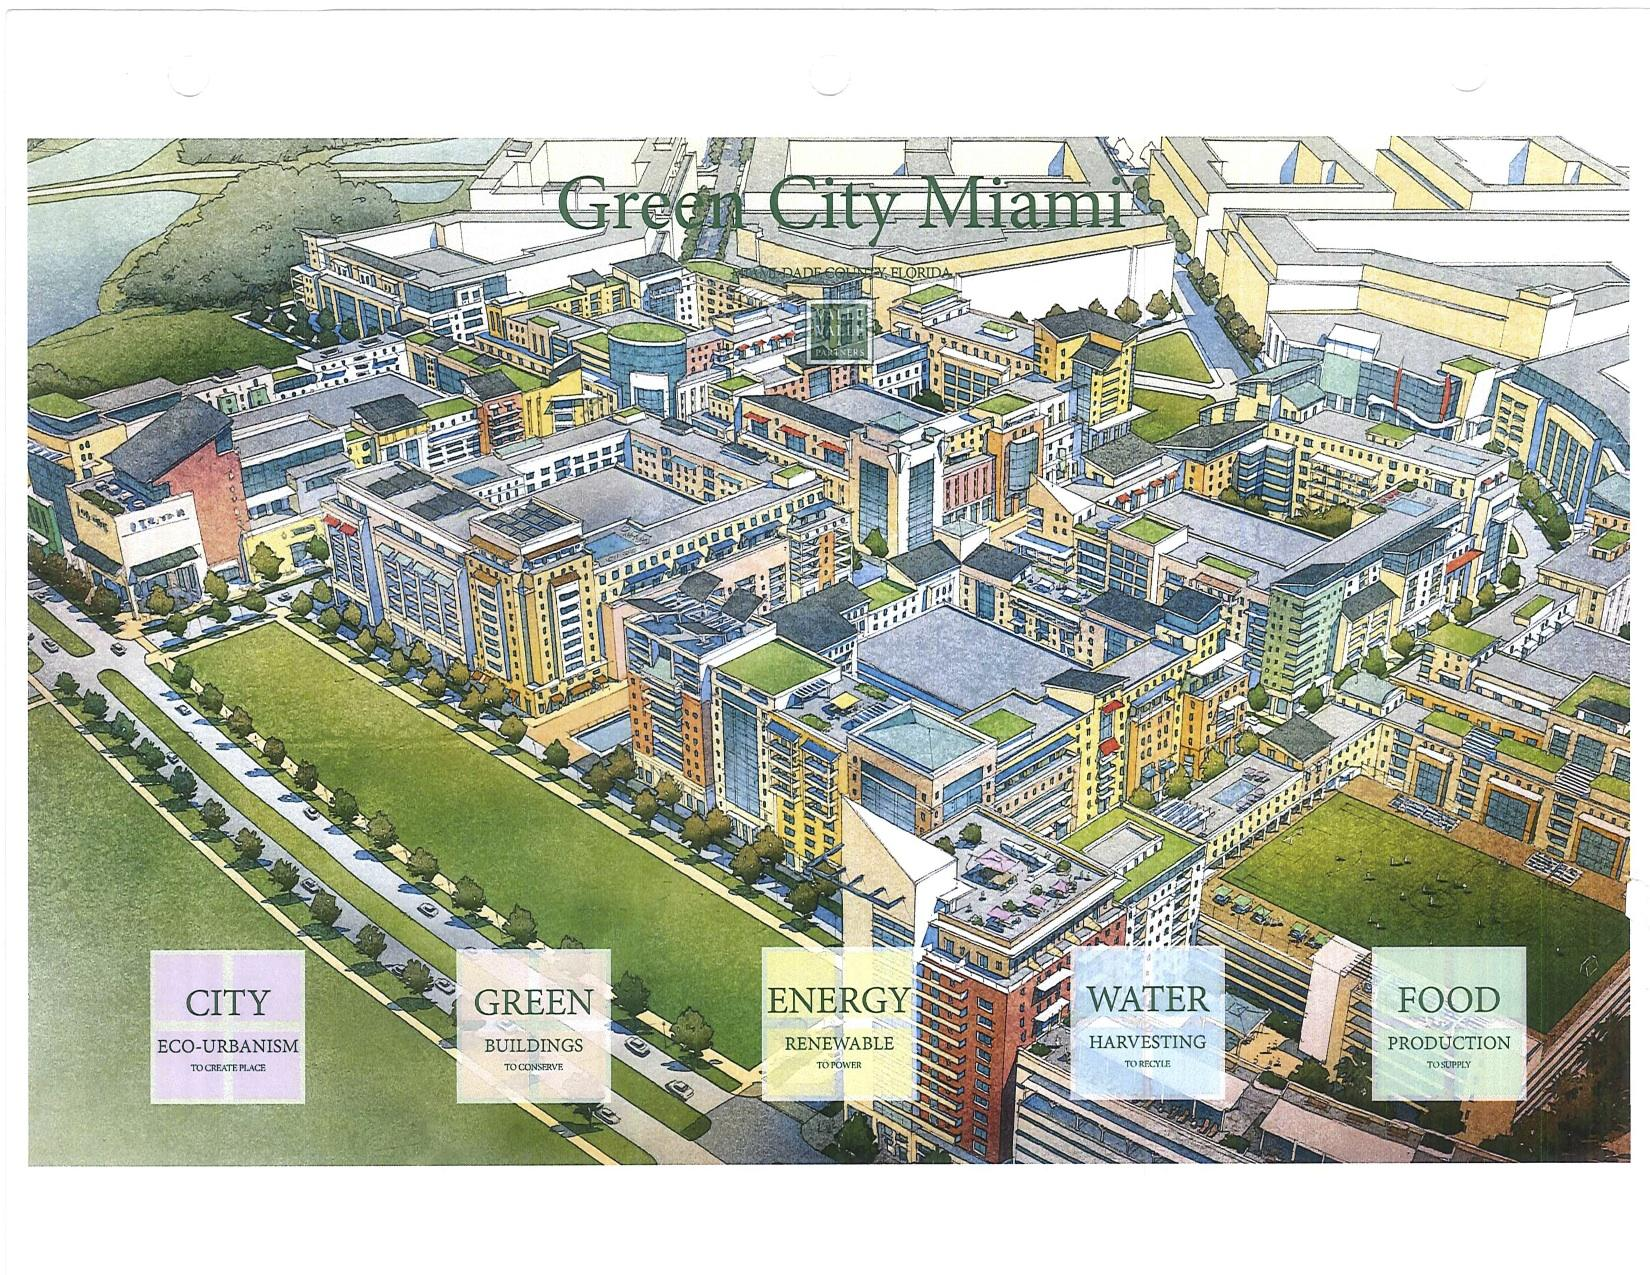 Miami dade planning advisory board denies application to build green city beyond udb wlrn Urban planning and design for the american city